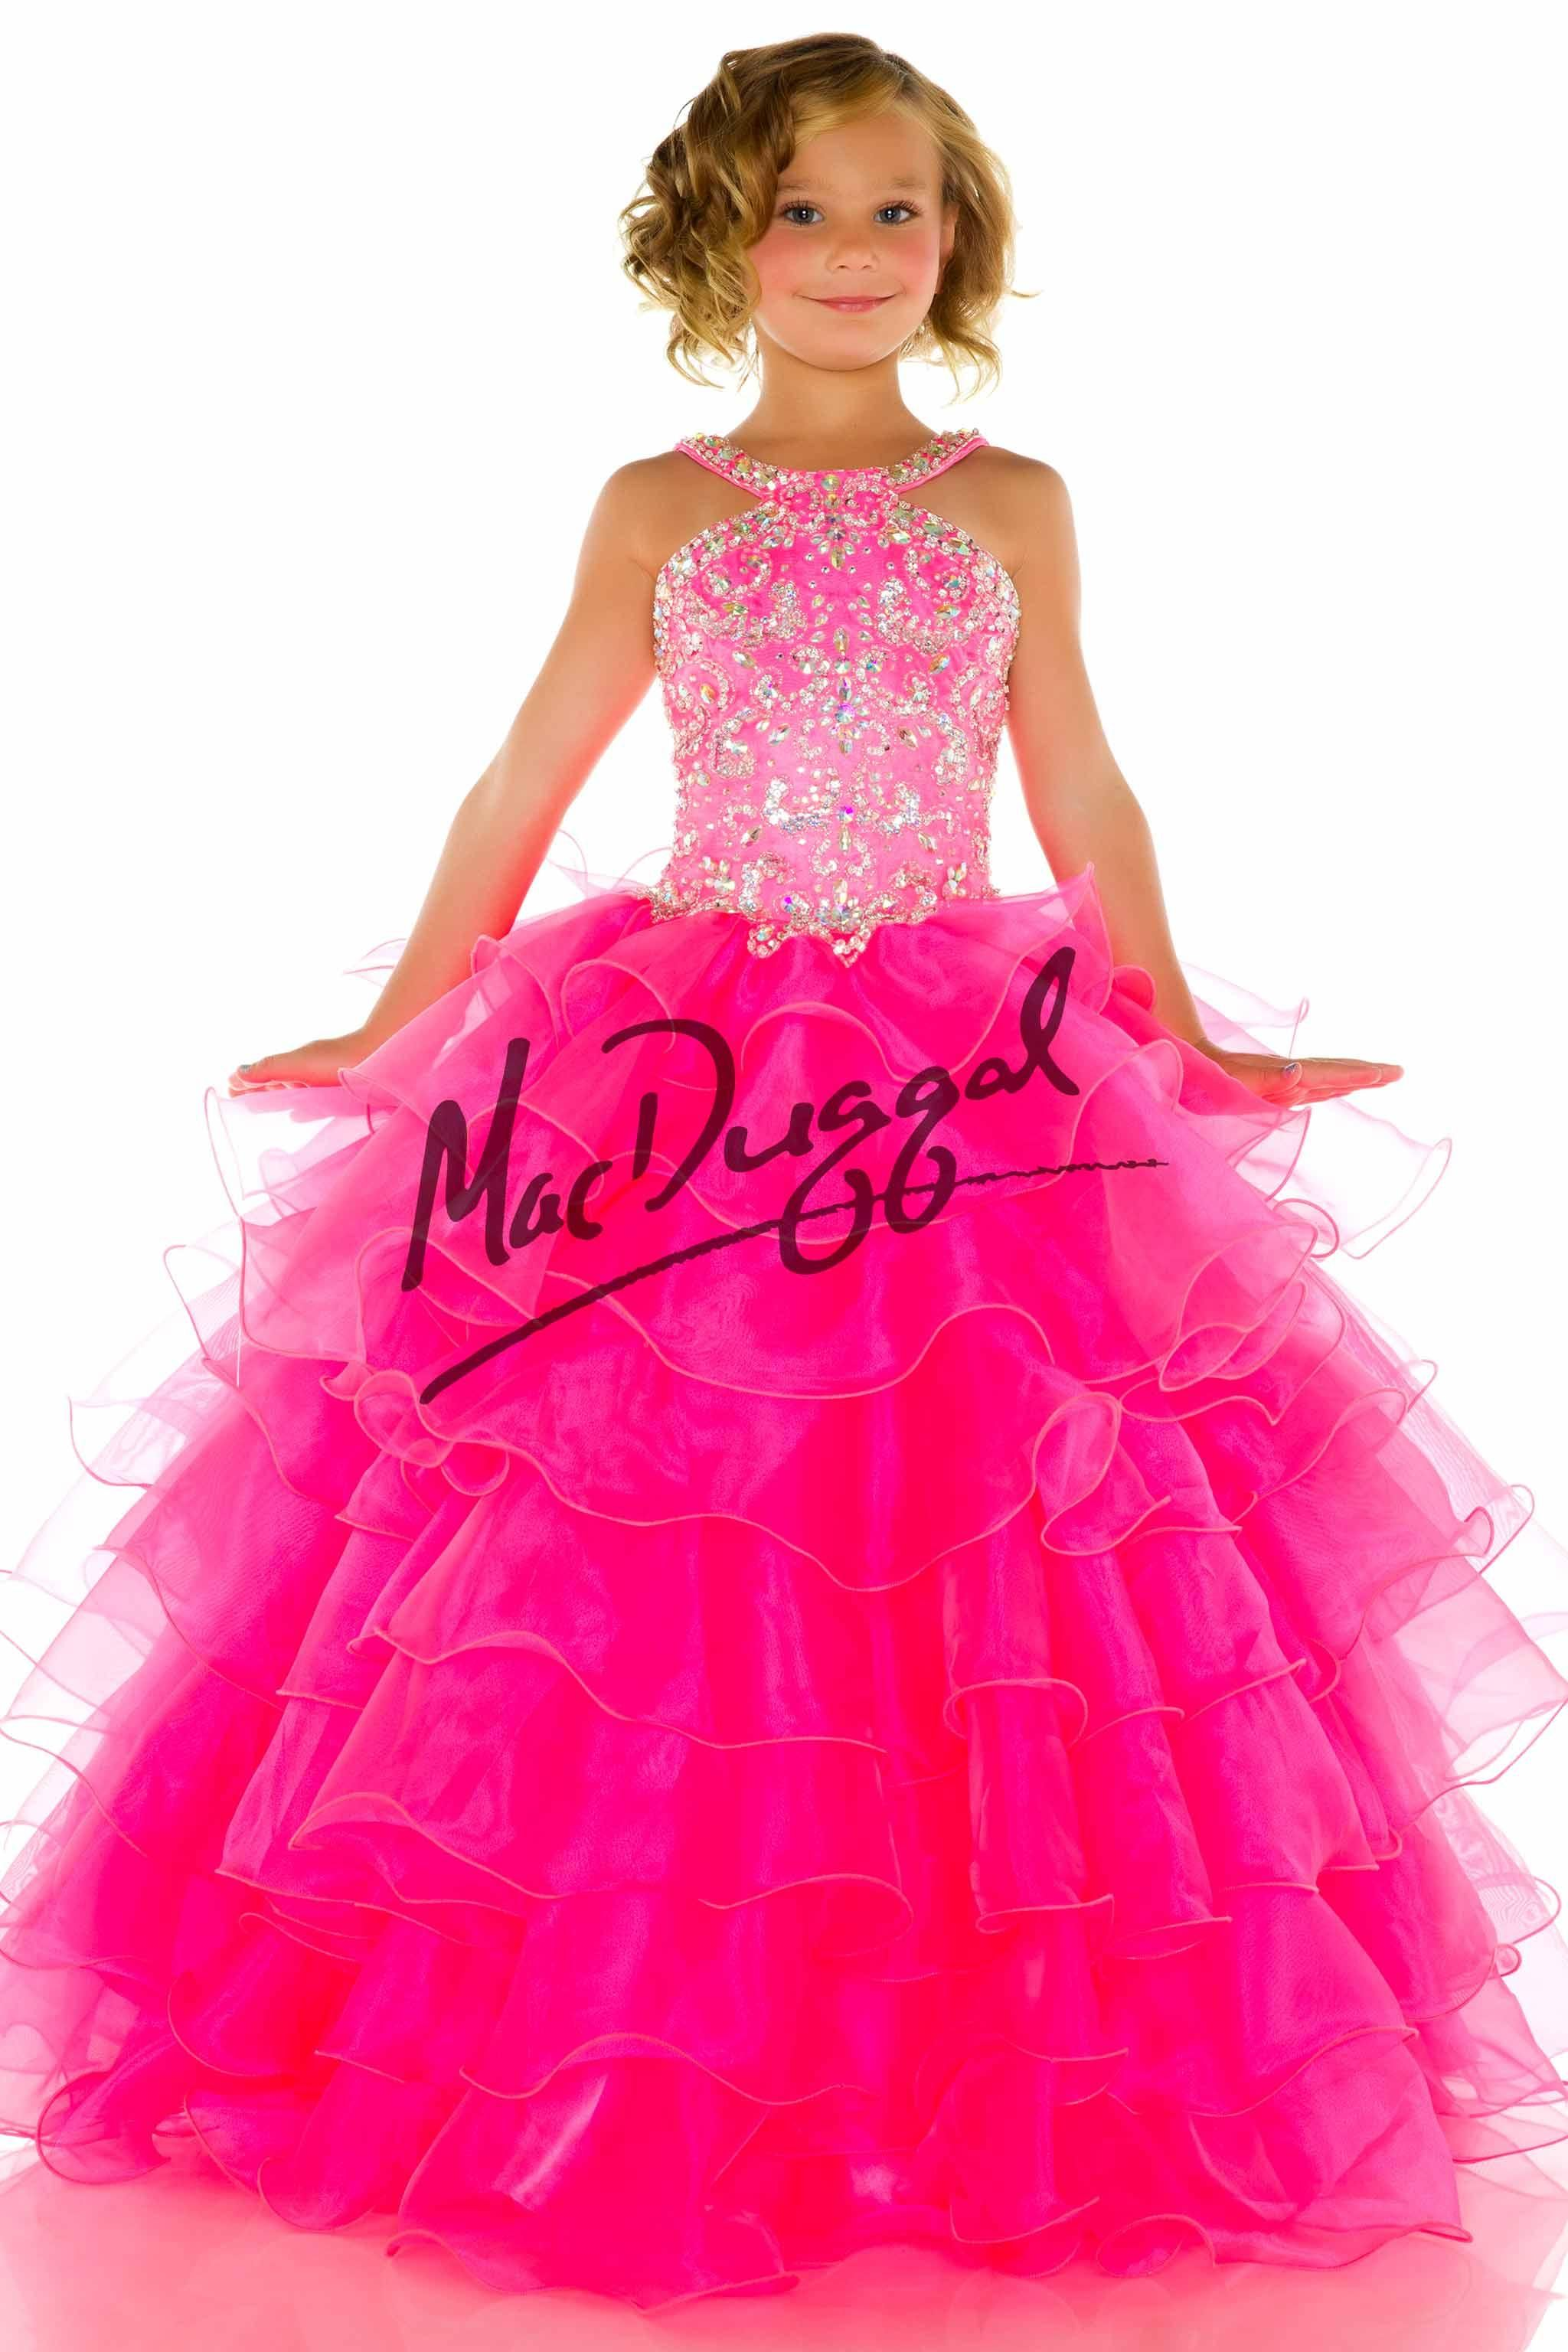 17 Best images about Pageant Dresses for CiCu on Pinterest | Girls ...